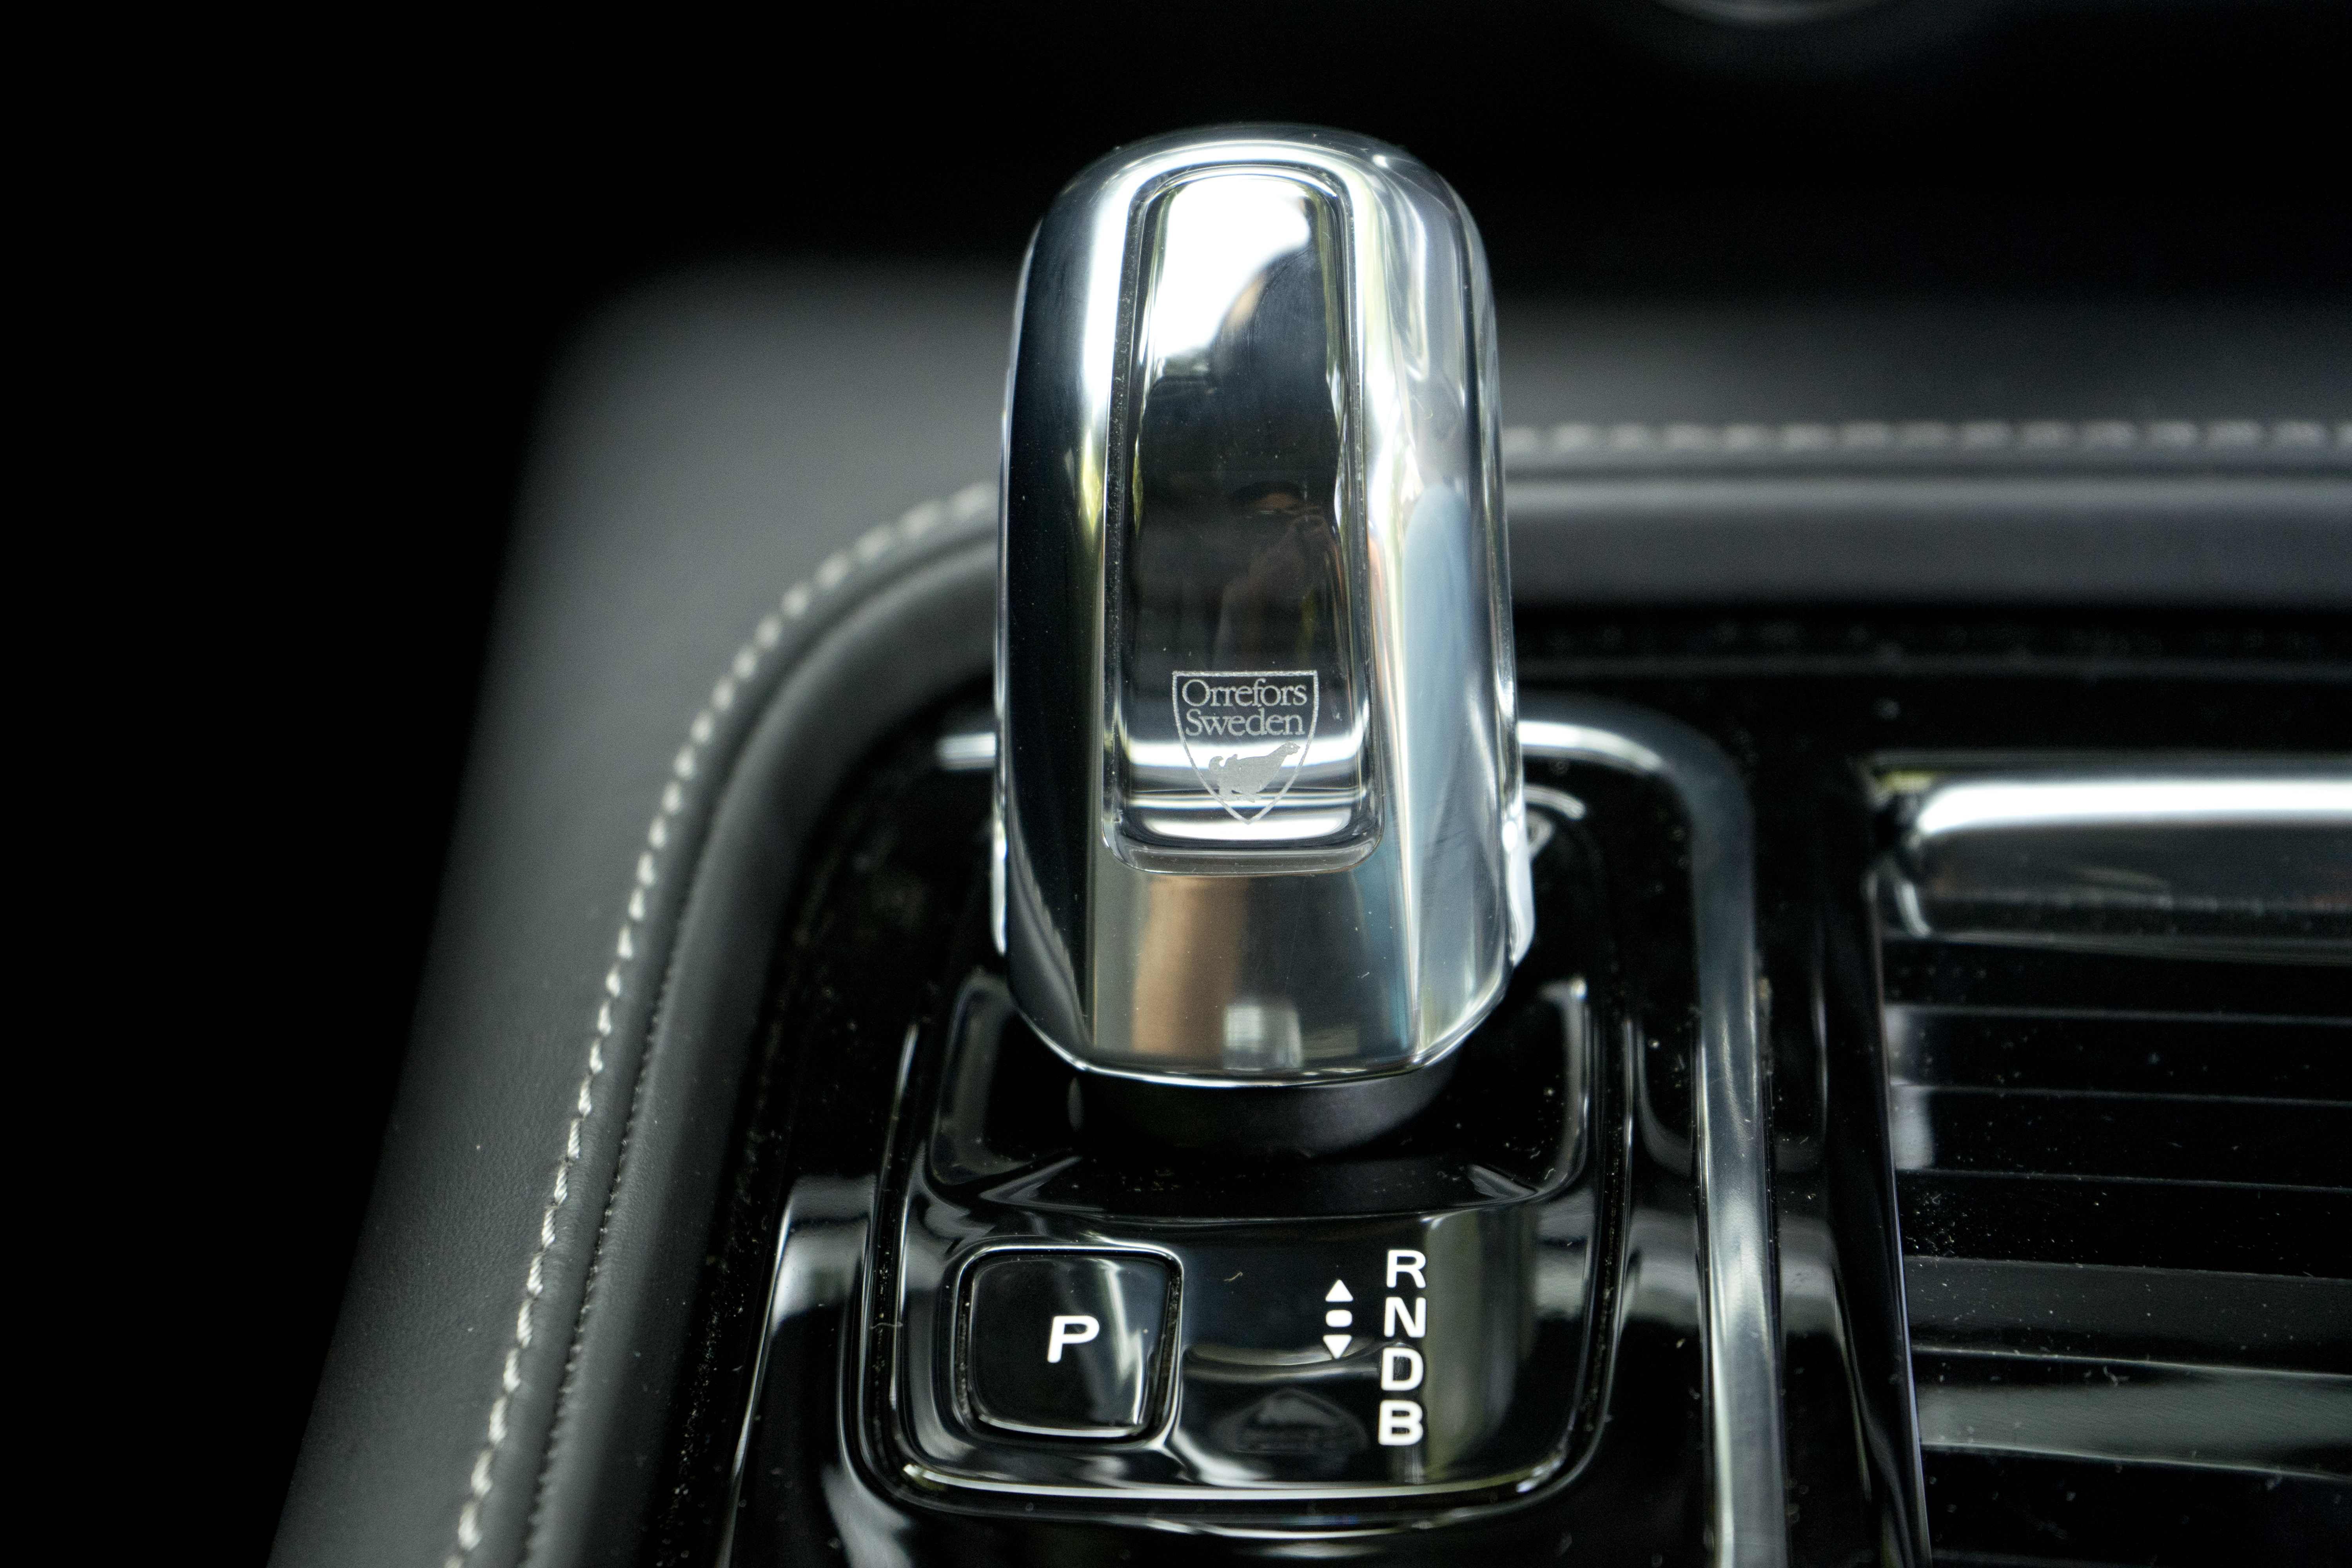 2018 Volvo S90 T8 interior orrefors shifter